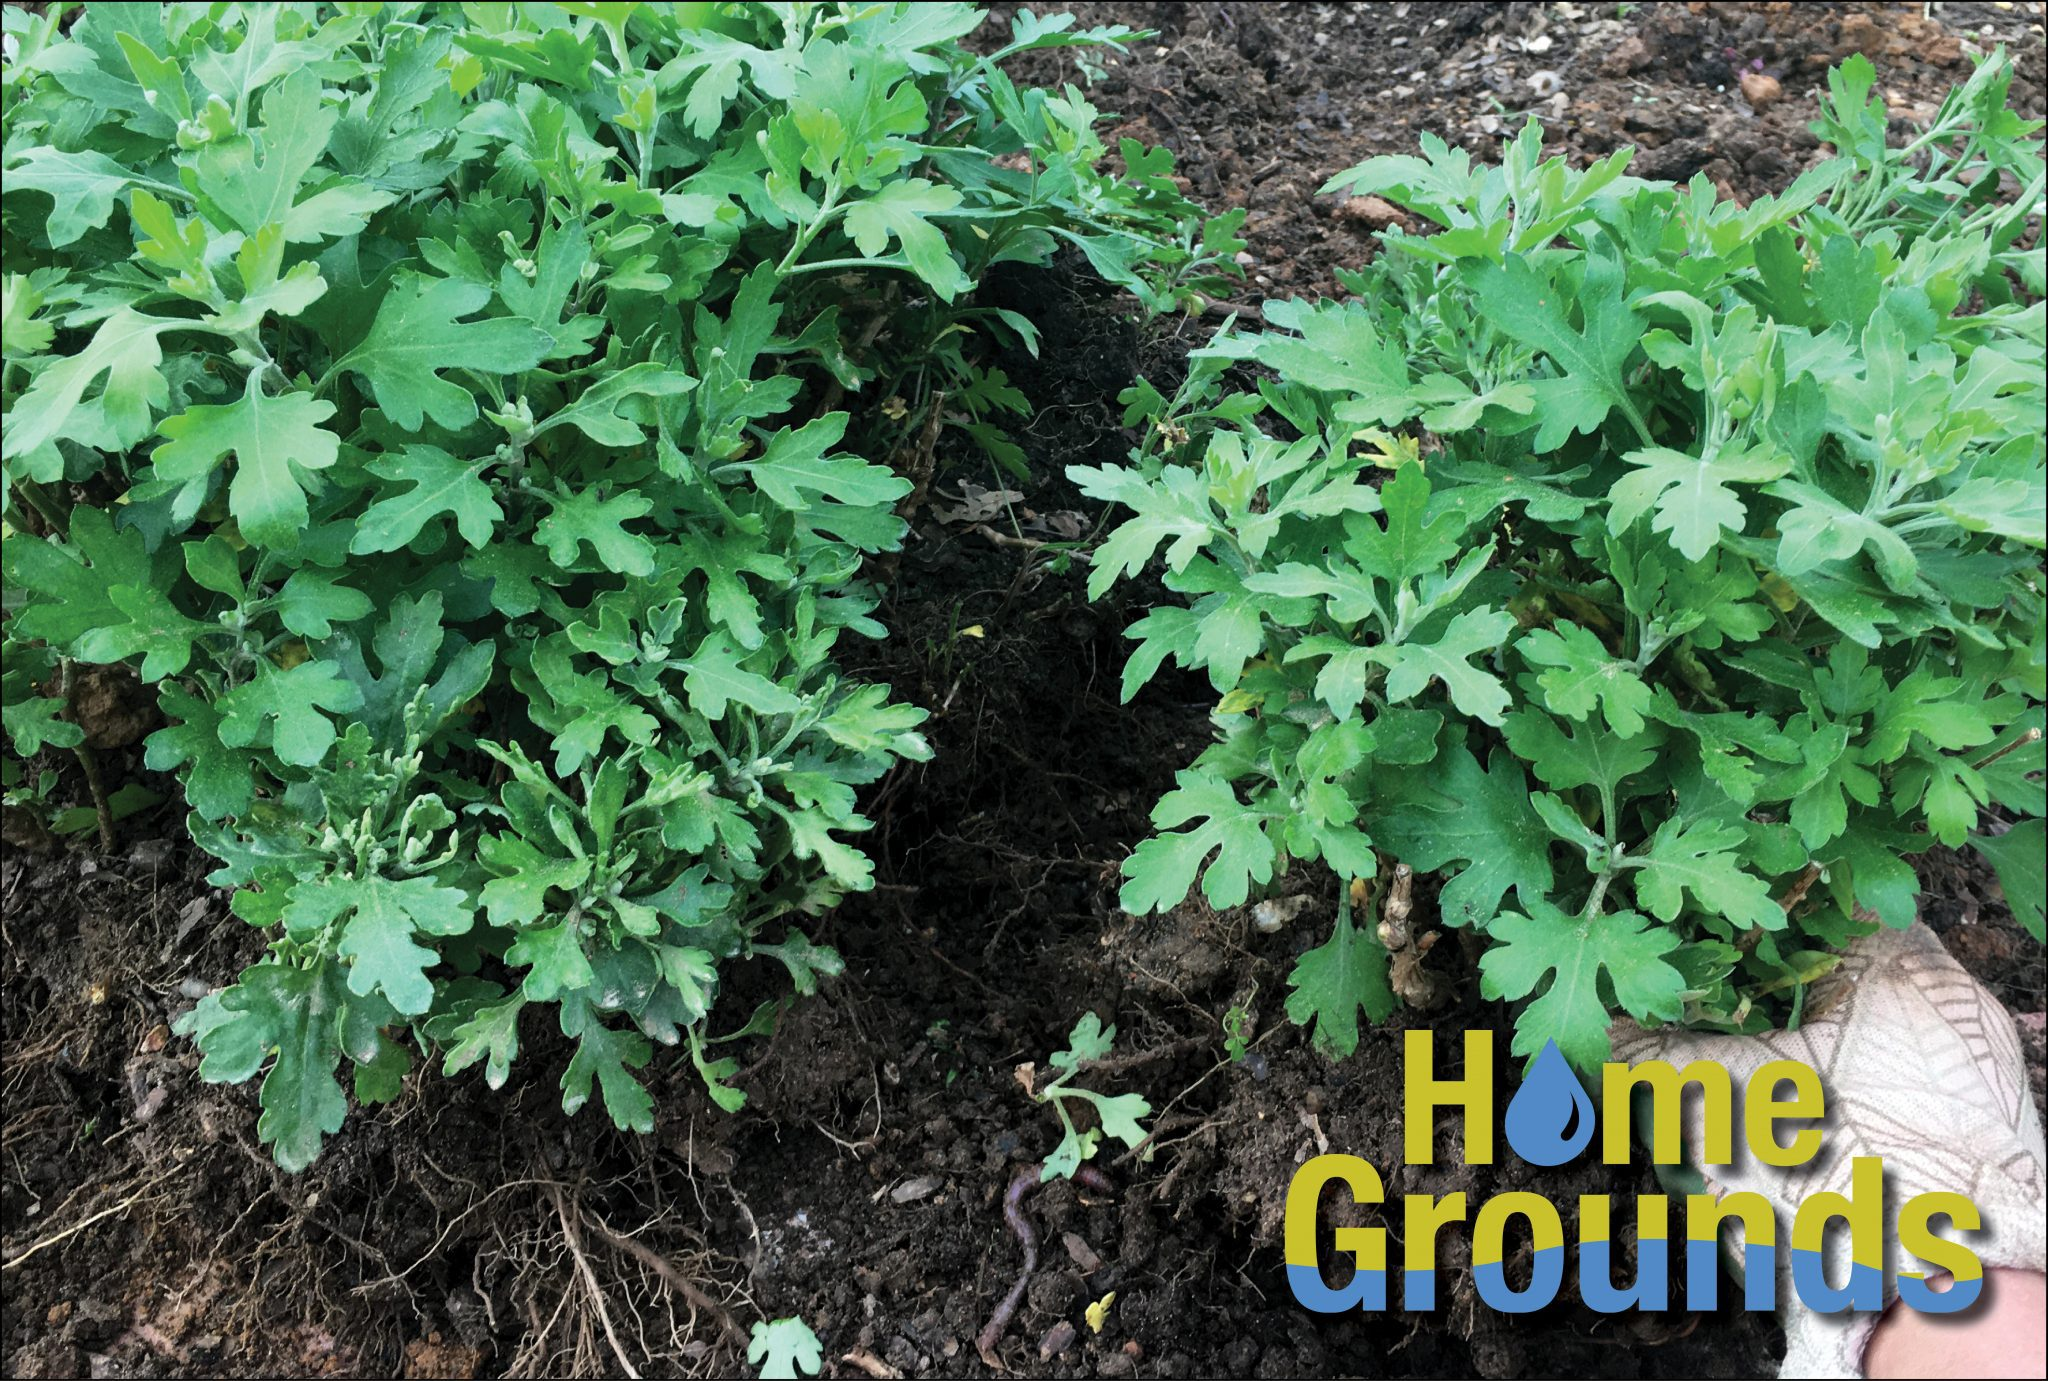 Perennial chrysanthemum plant being divided into two plants.